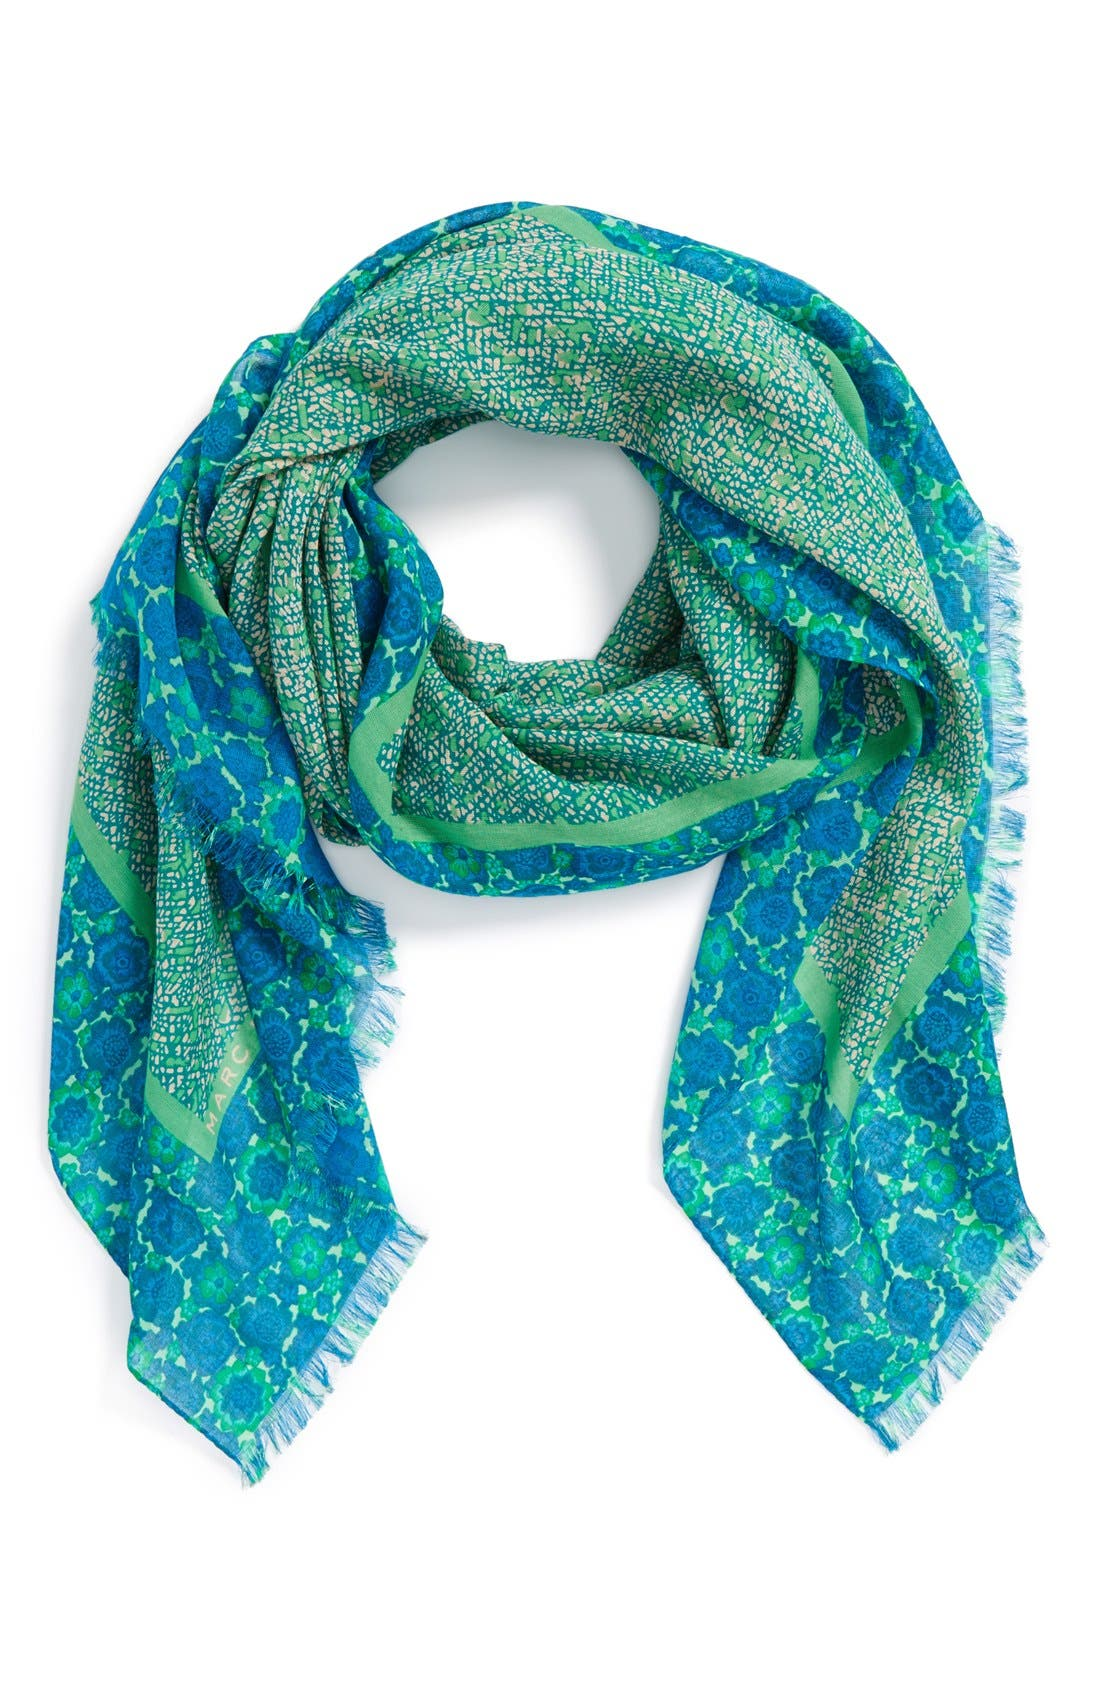 Alternate Image 1 Selected - MARC BY MARC JACOBS 'Karoo & Floral' Cotton Print Scarf